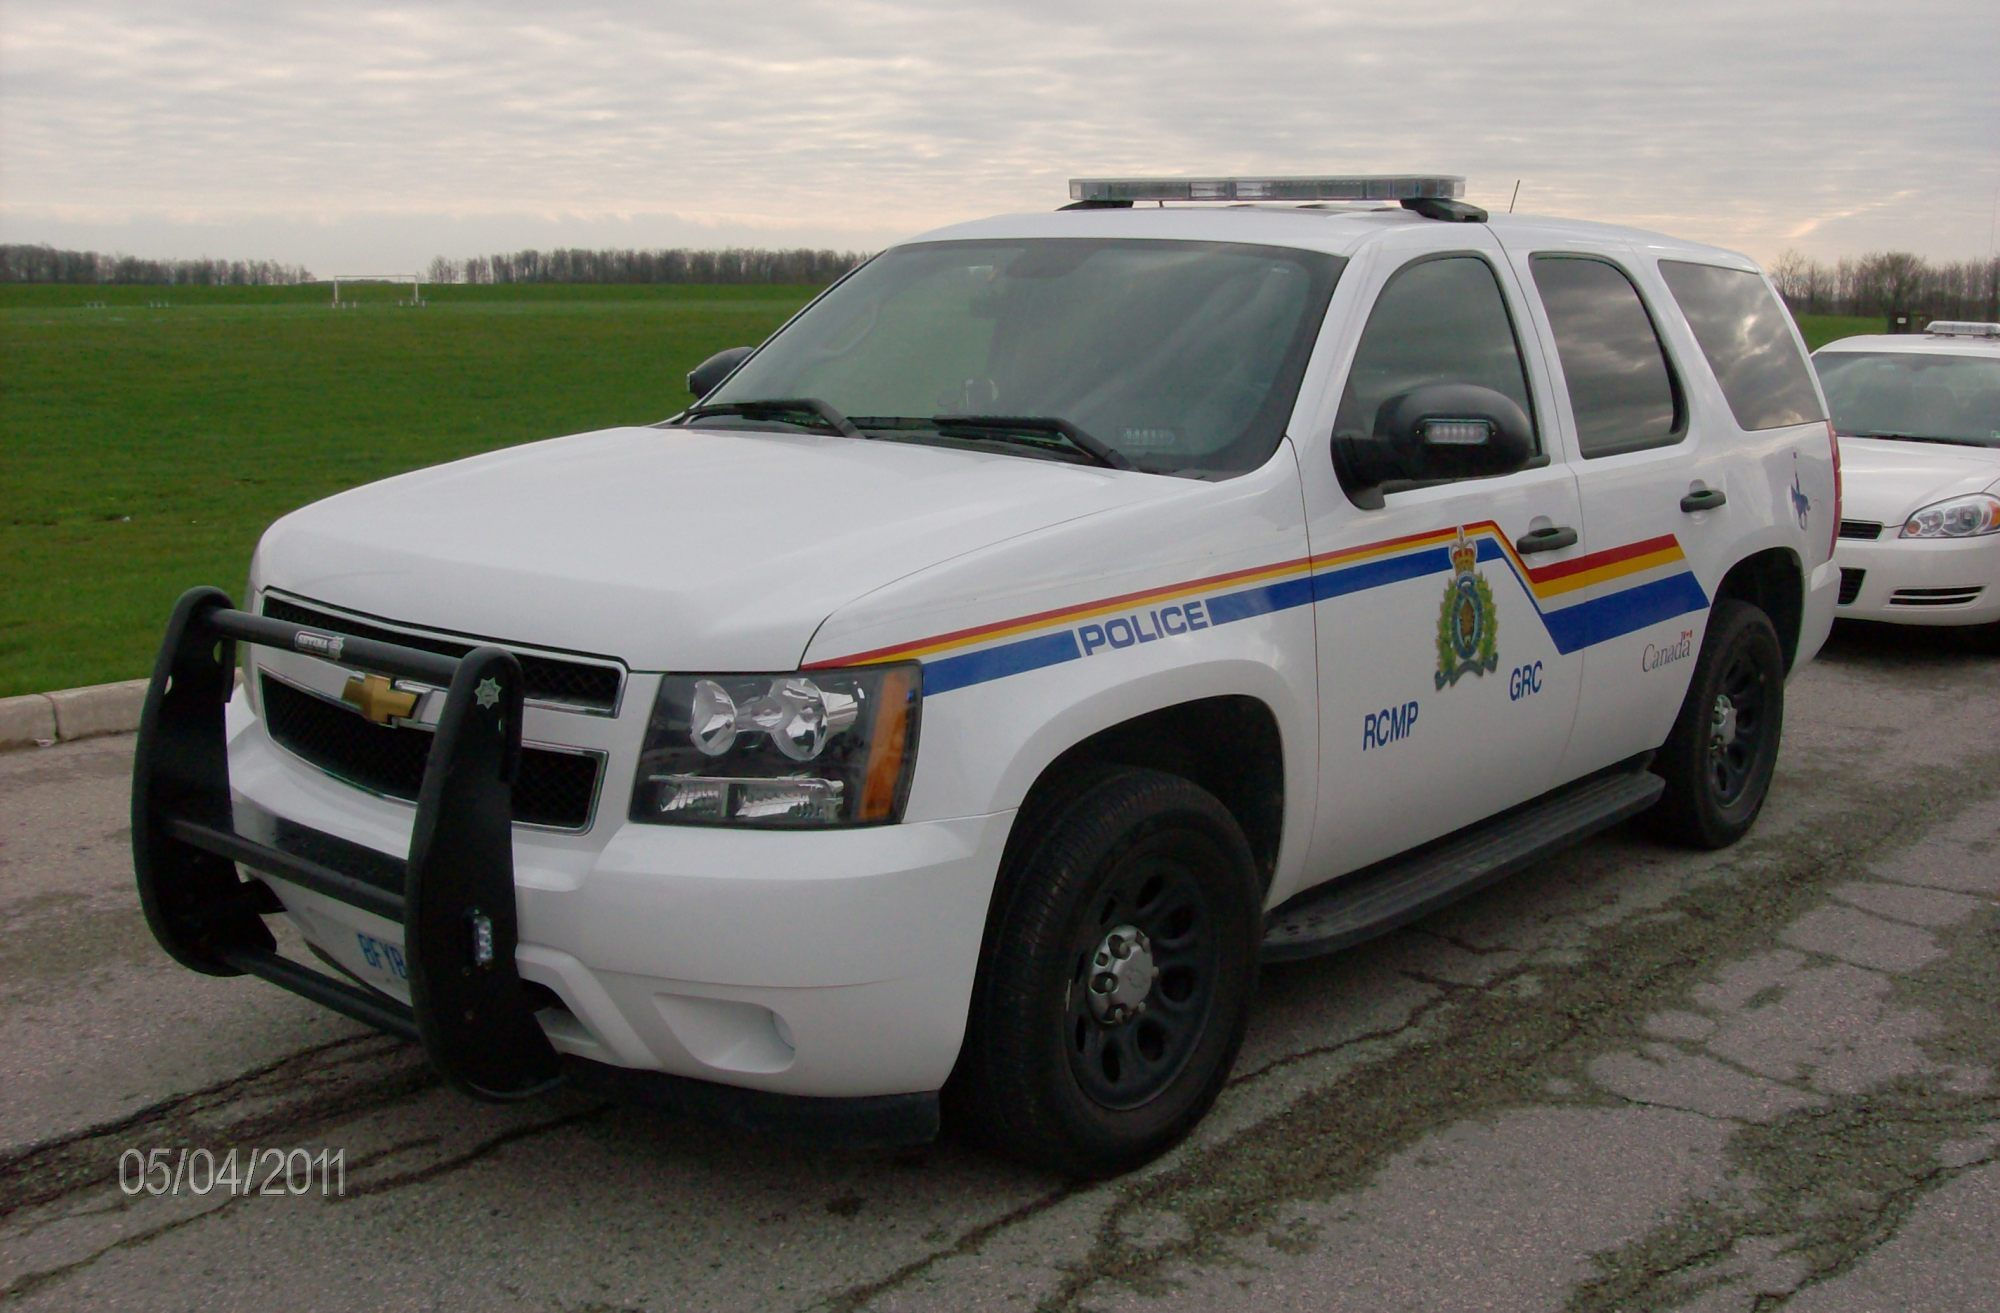 RCMP 2010 Chevy Tahoe Chevy tahoe, Police cars, Chevy